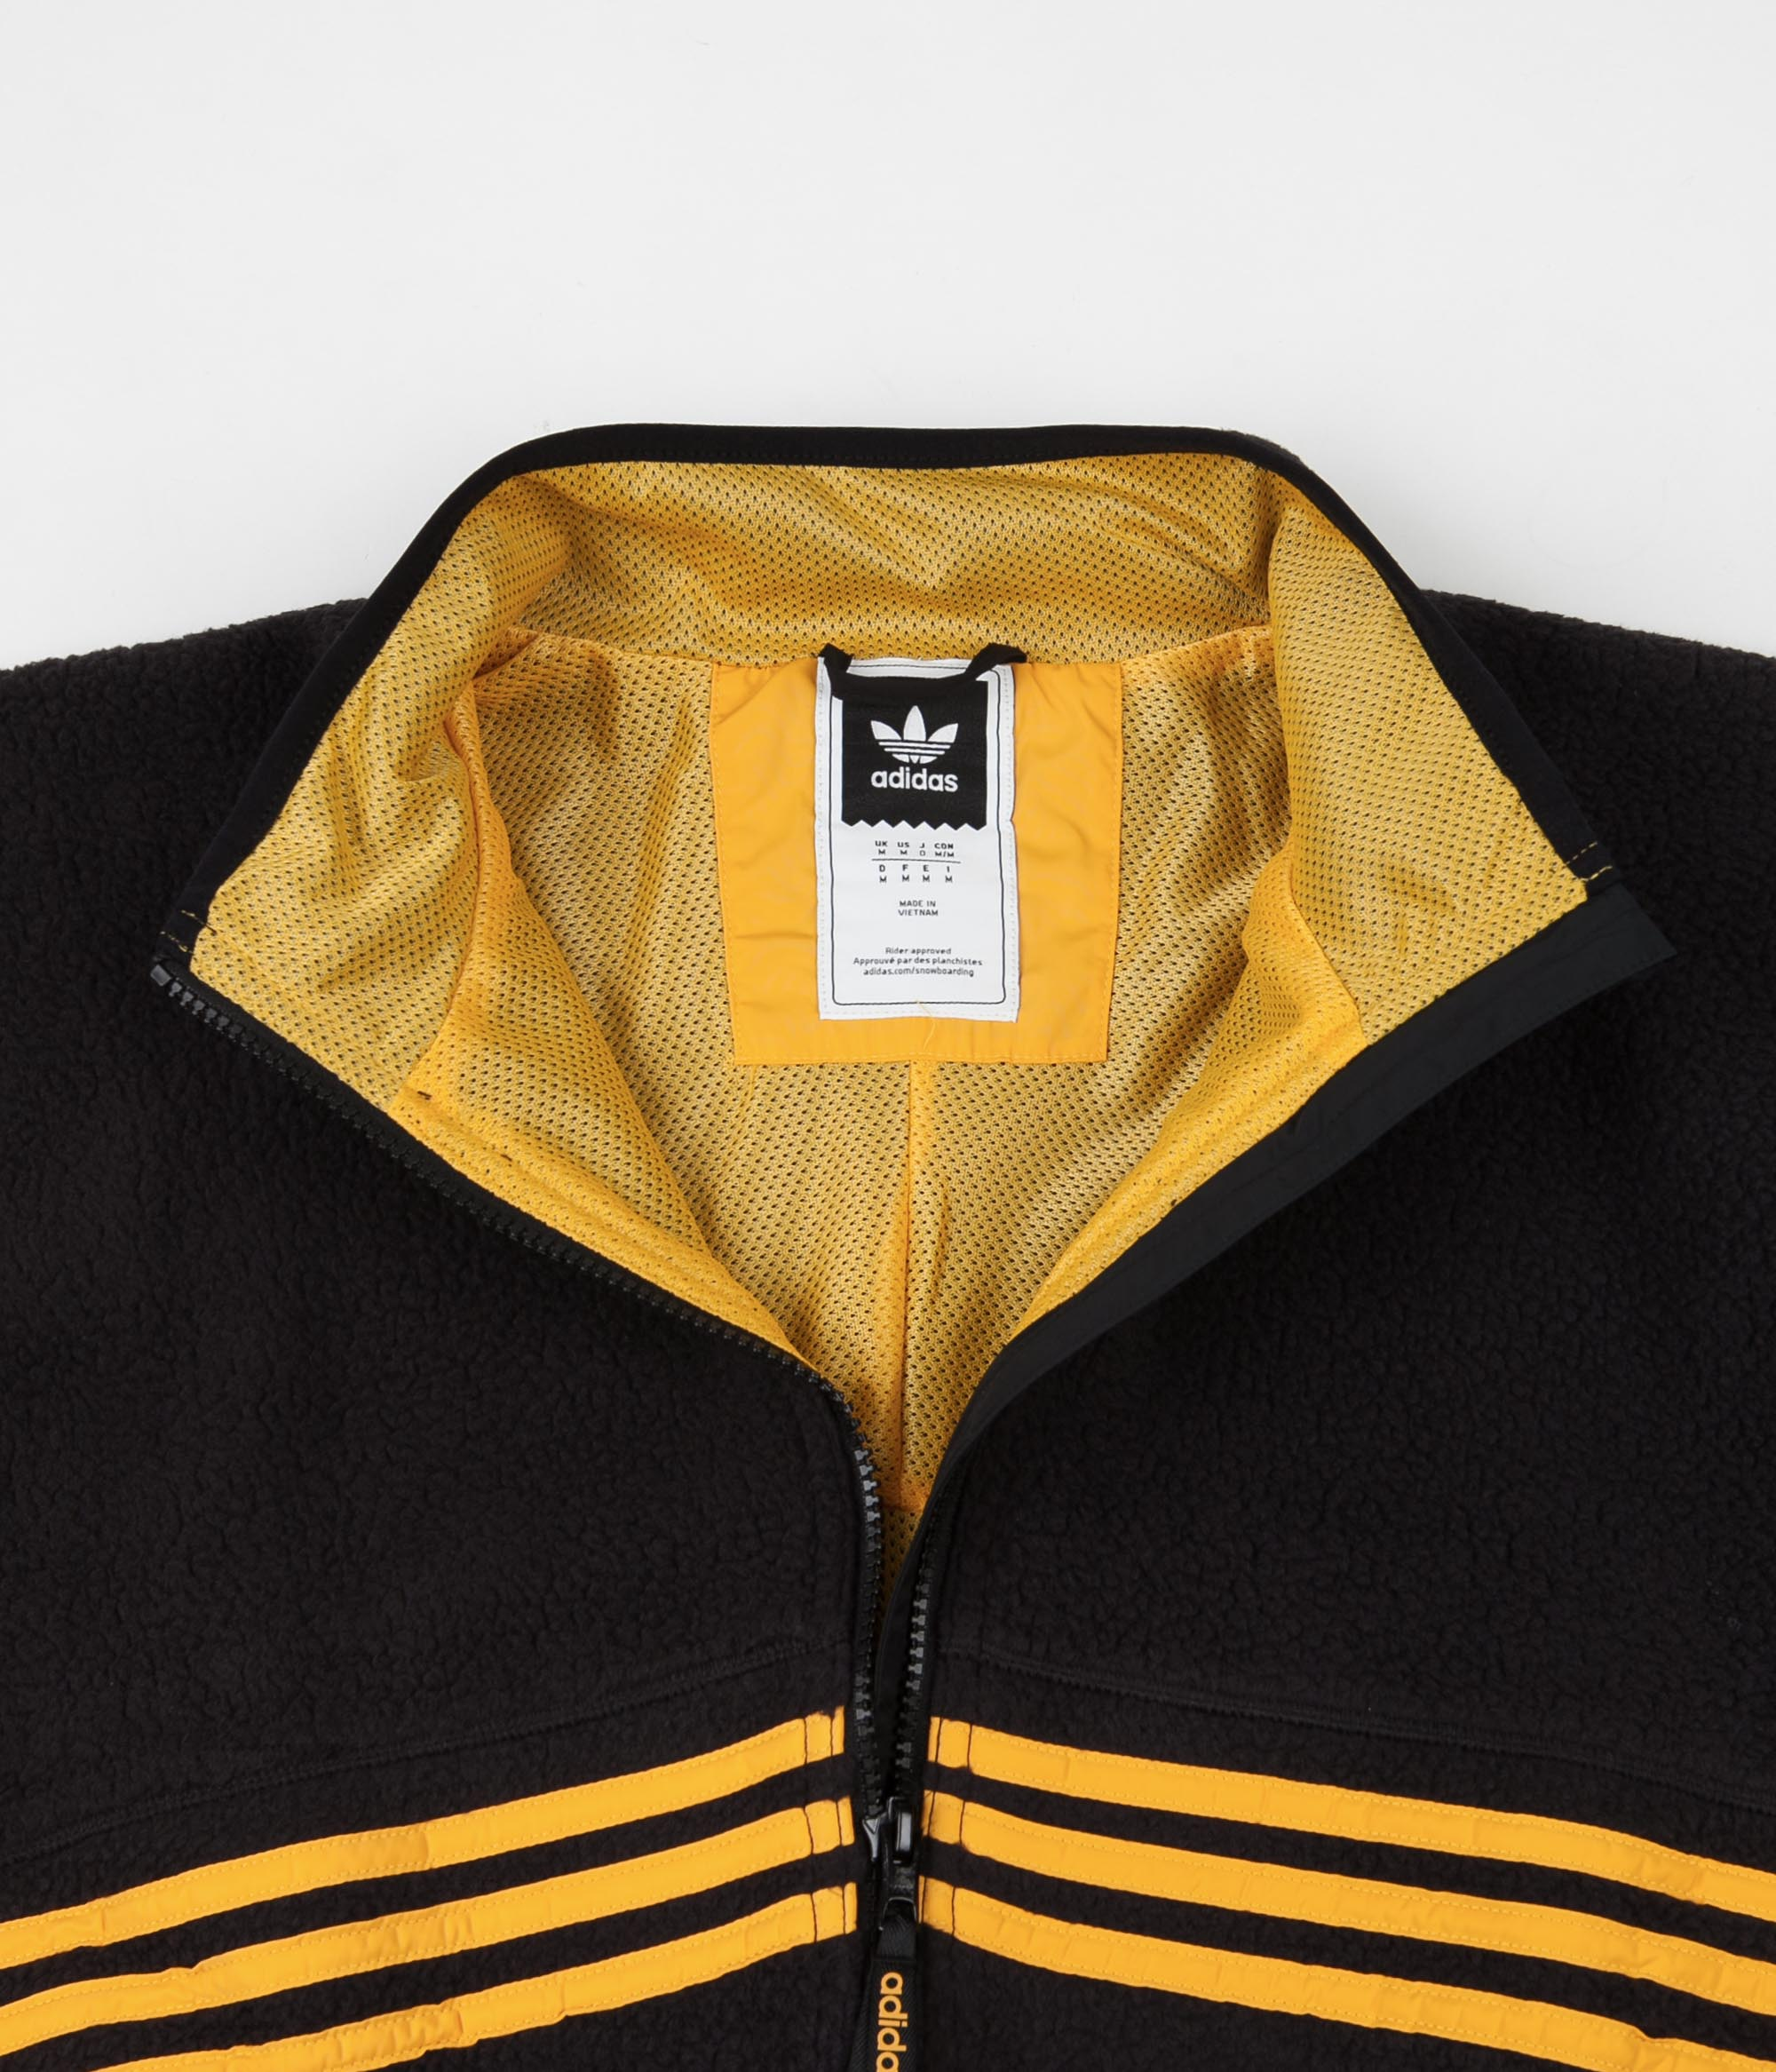 Adidas Sherpa Full Zip Jacket - Black / Active Gold